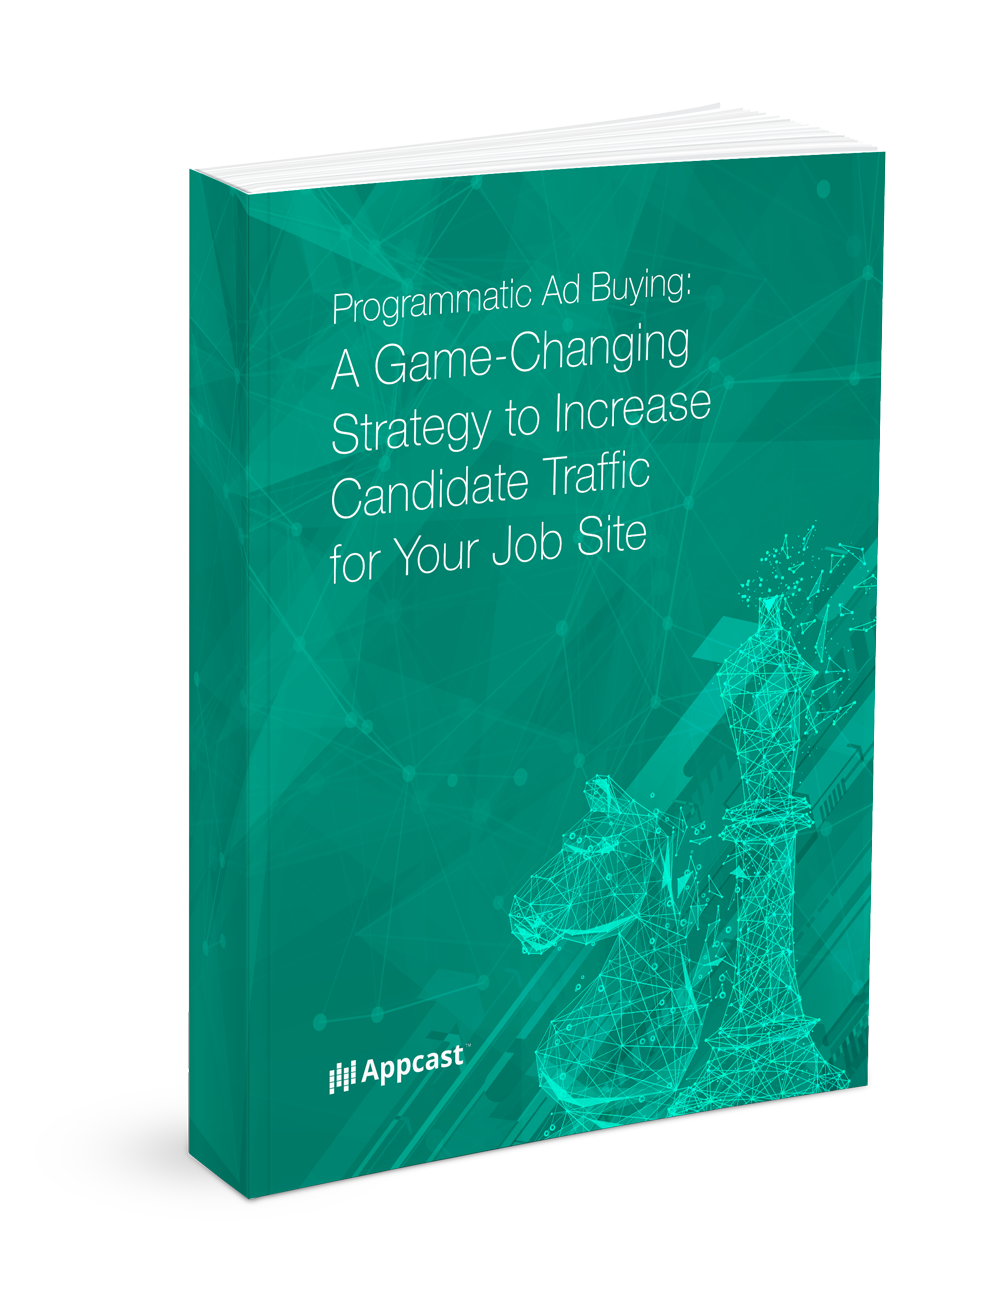 Programmatic Ad Buying: A Game-Changing Strategy to Increase Candidate Traffic for Your Job Site